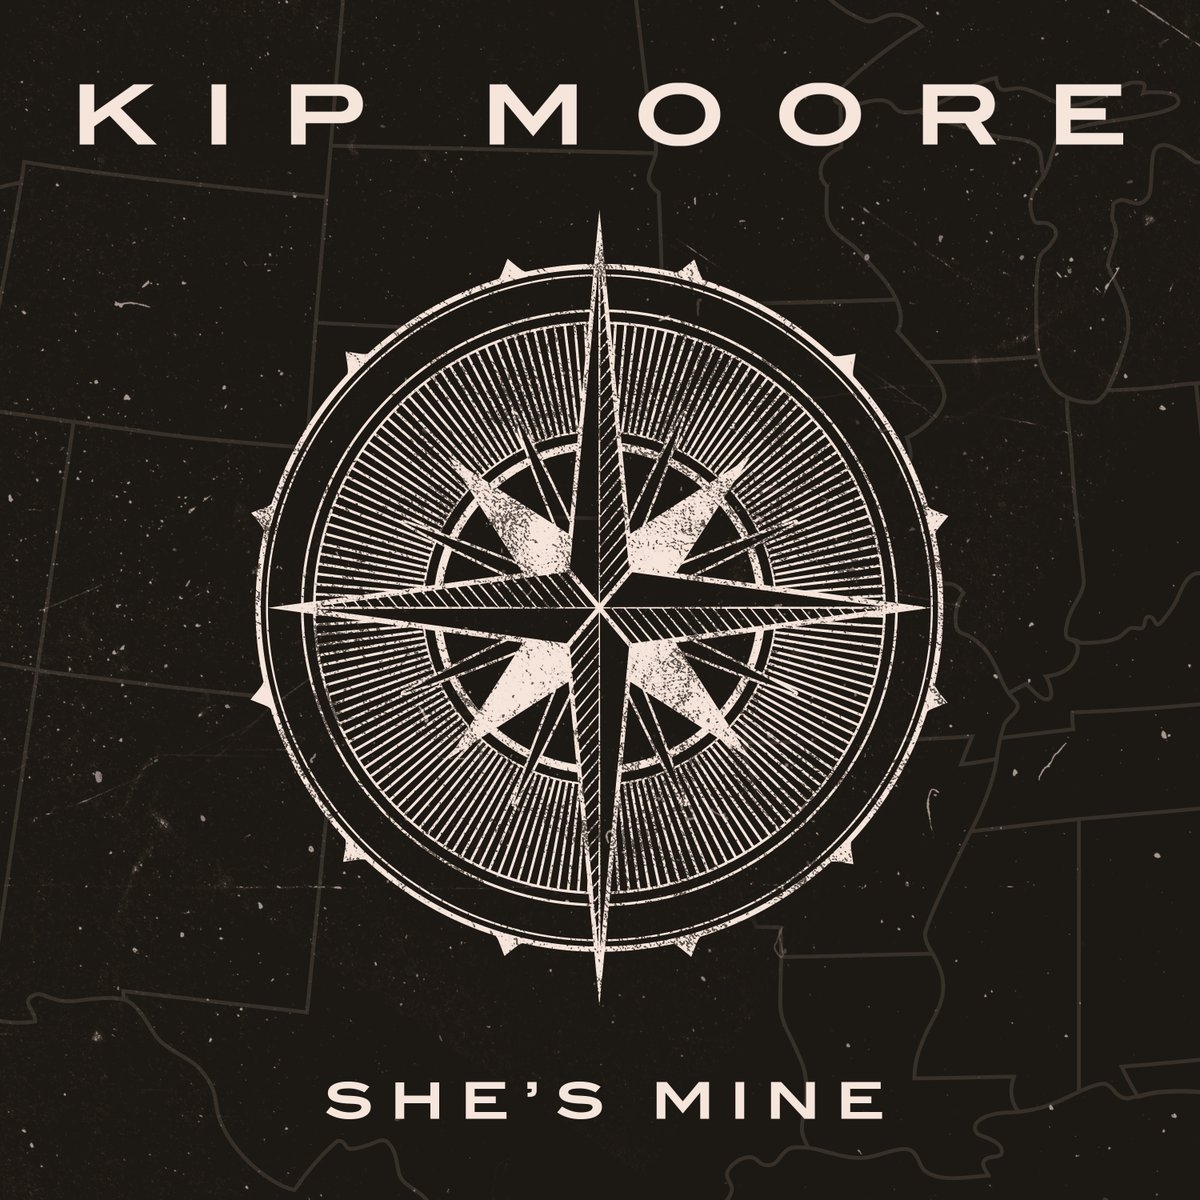 Kip Moore ushers in new chapter with new song 'She's Mine'